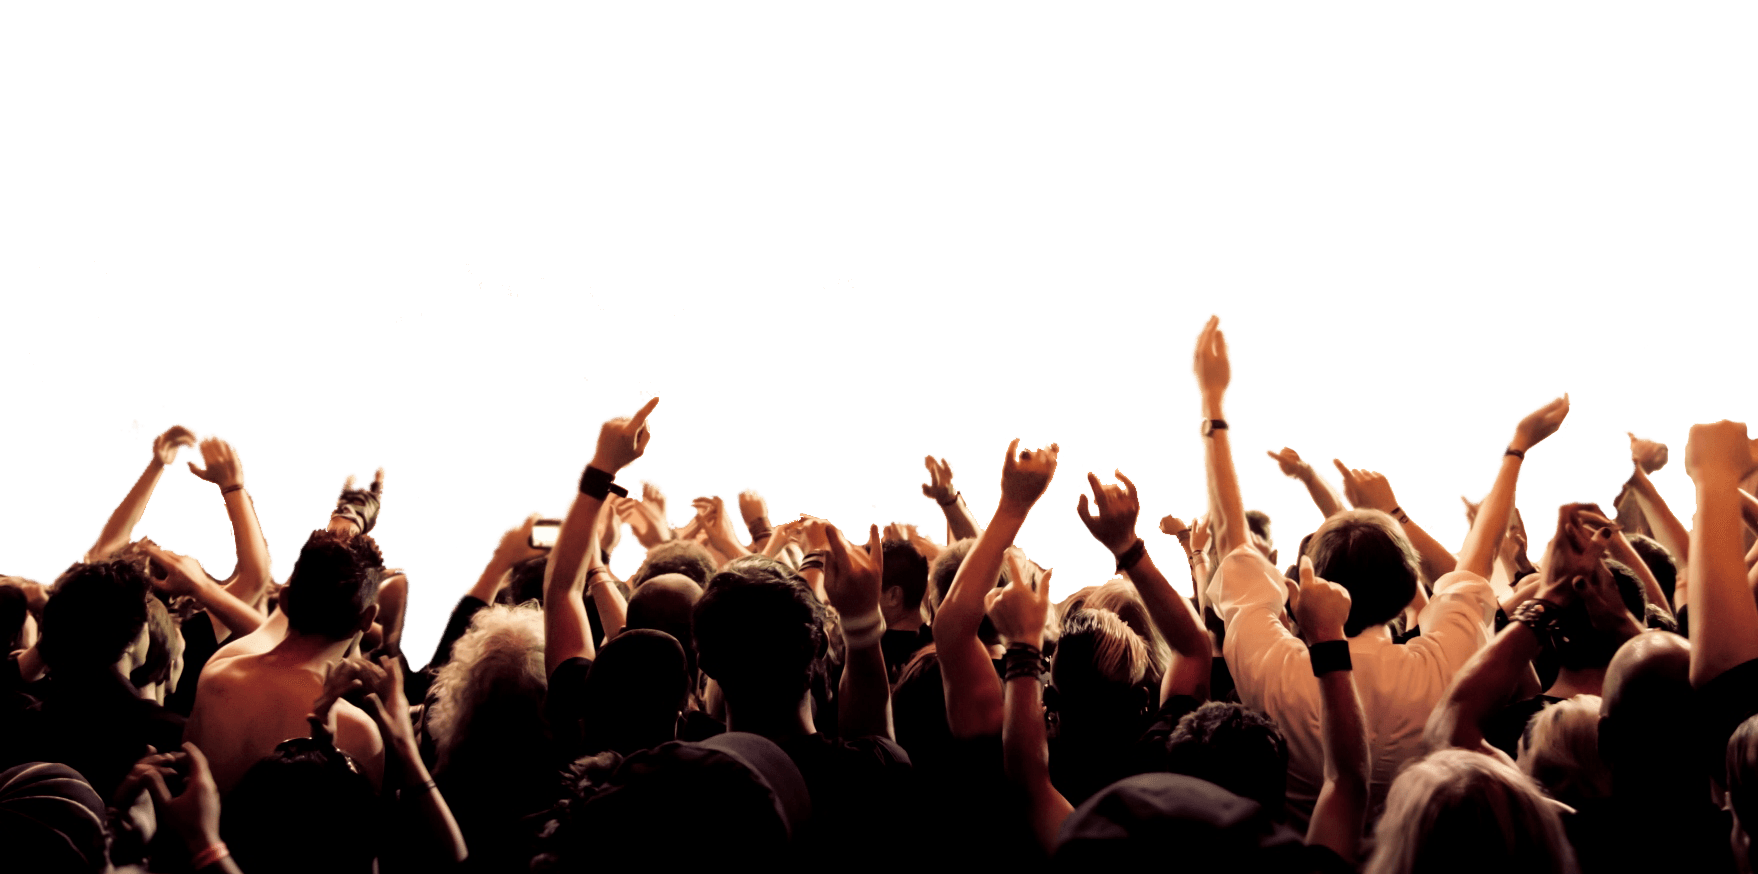 A Crowd Cheering for a Basketball Game